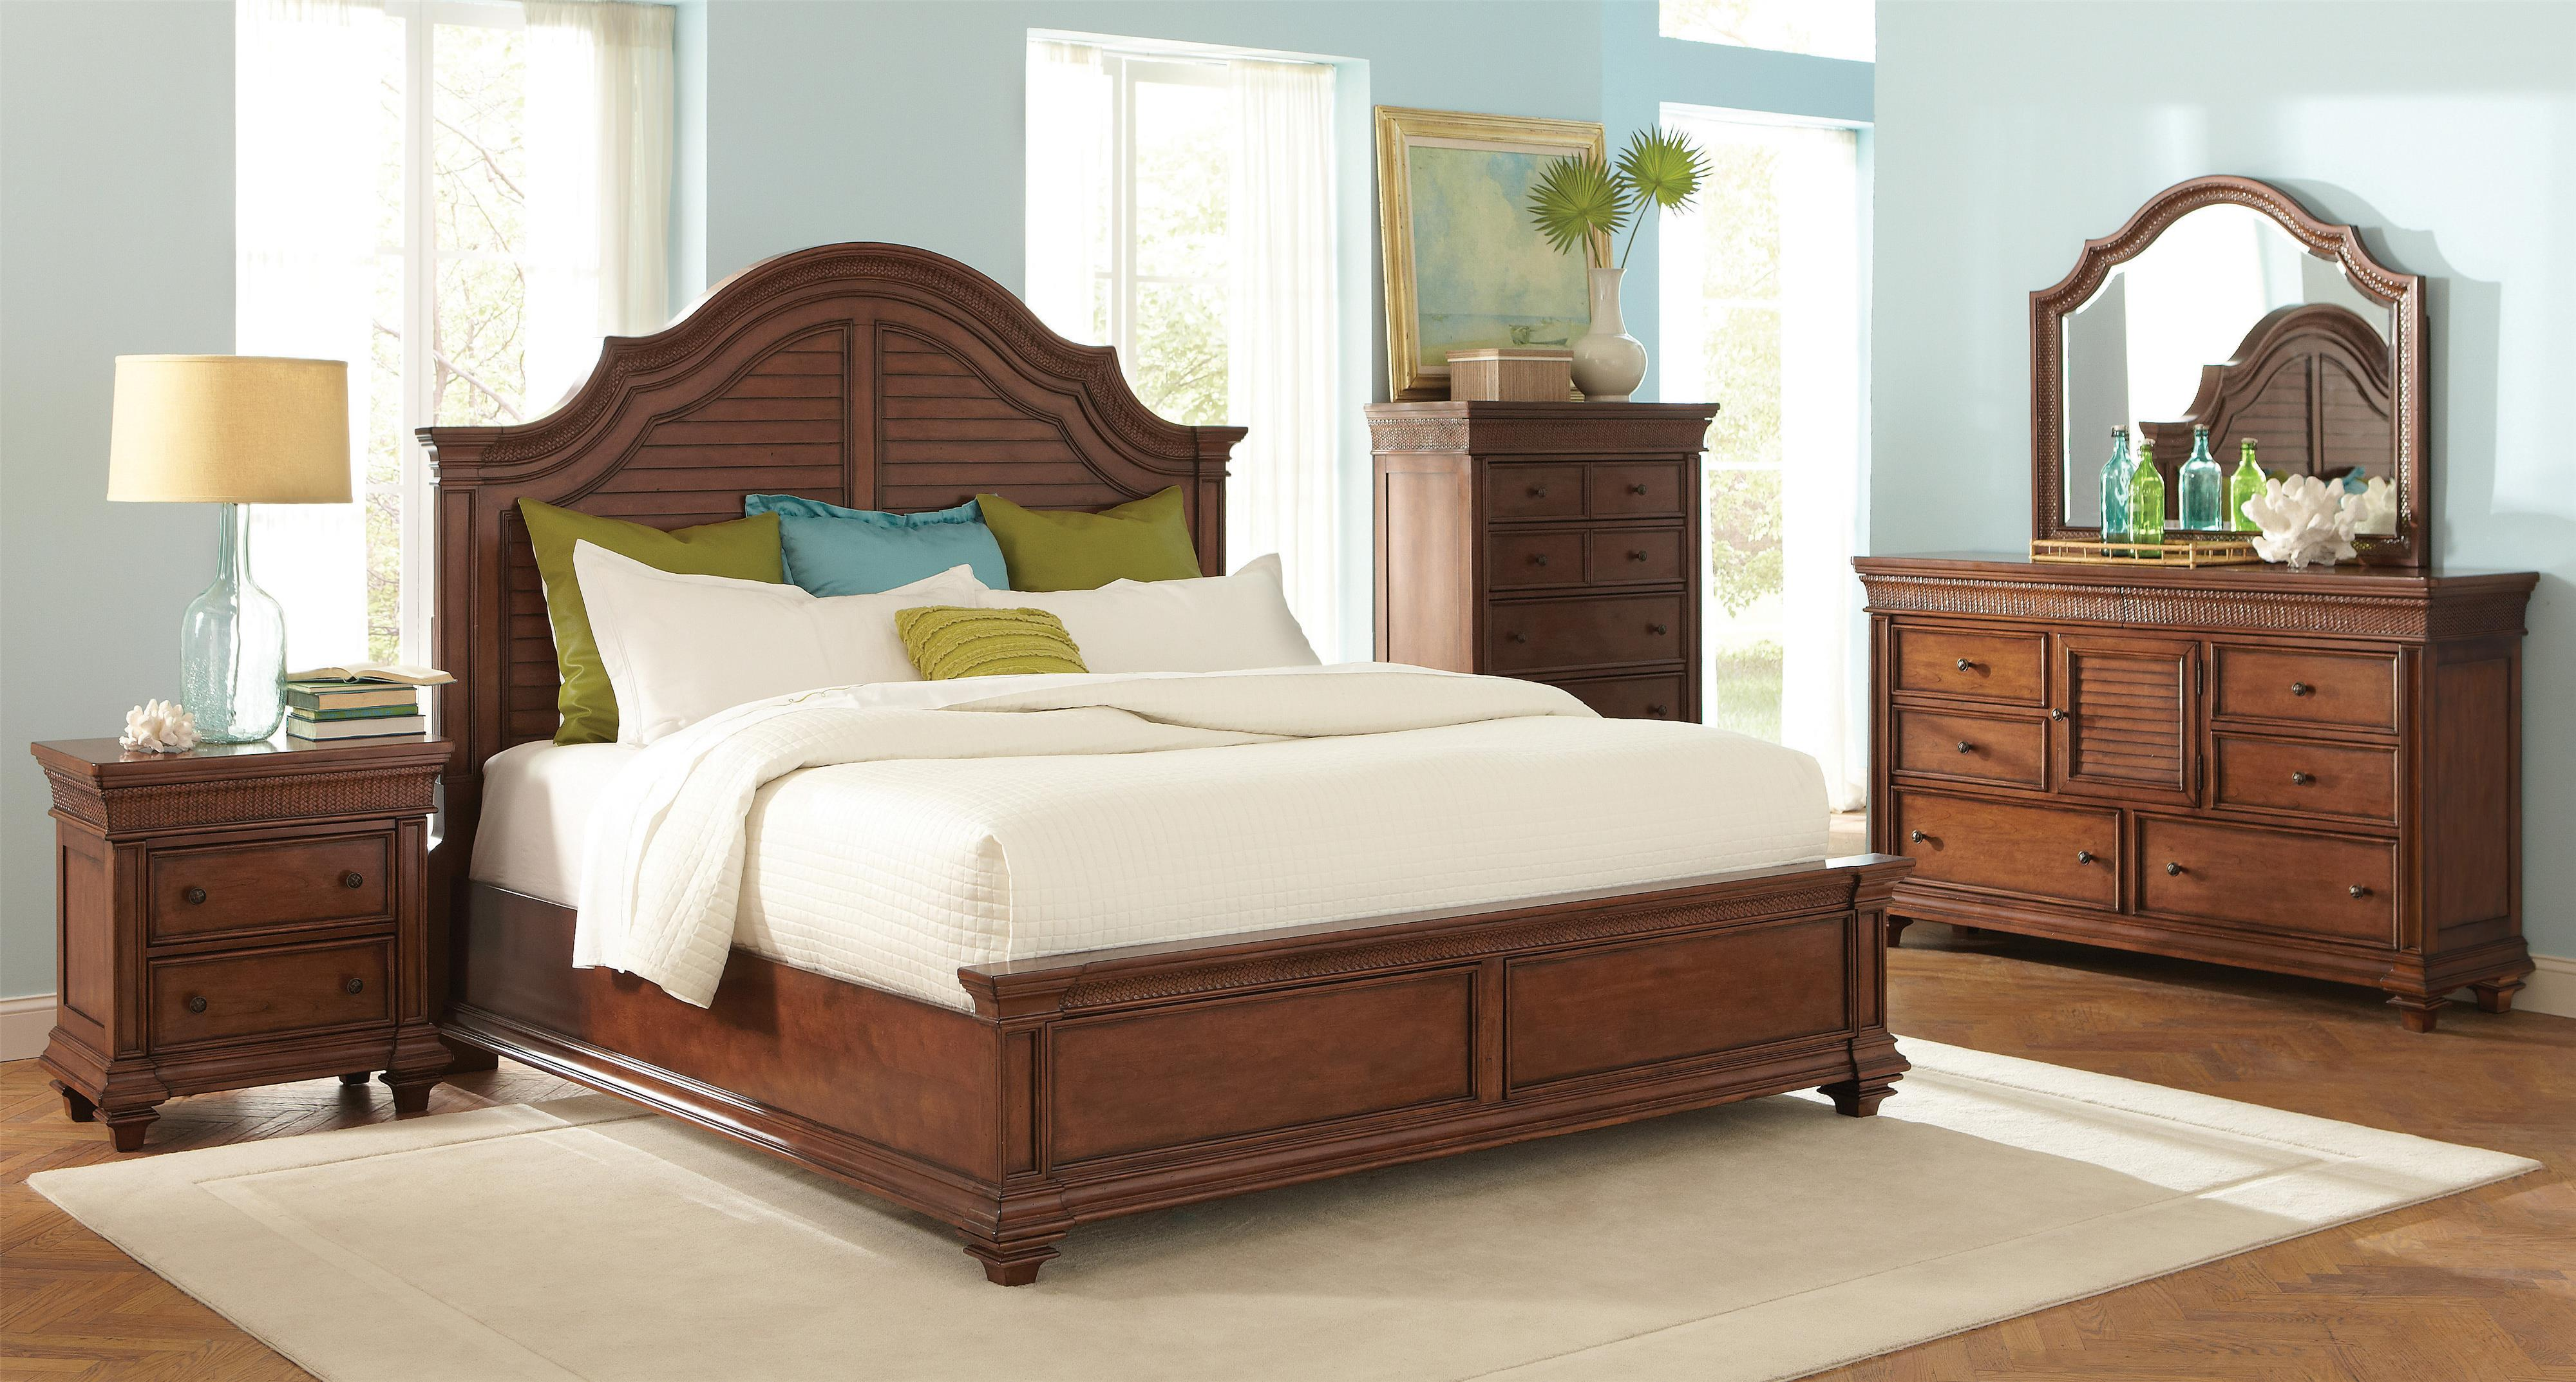 Riverside Furniture Windward Bay King Bedroom Group - Item Number: 428 K Bedroom Group 2